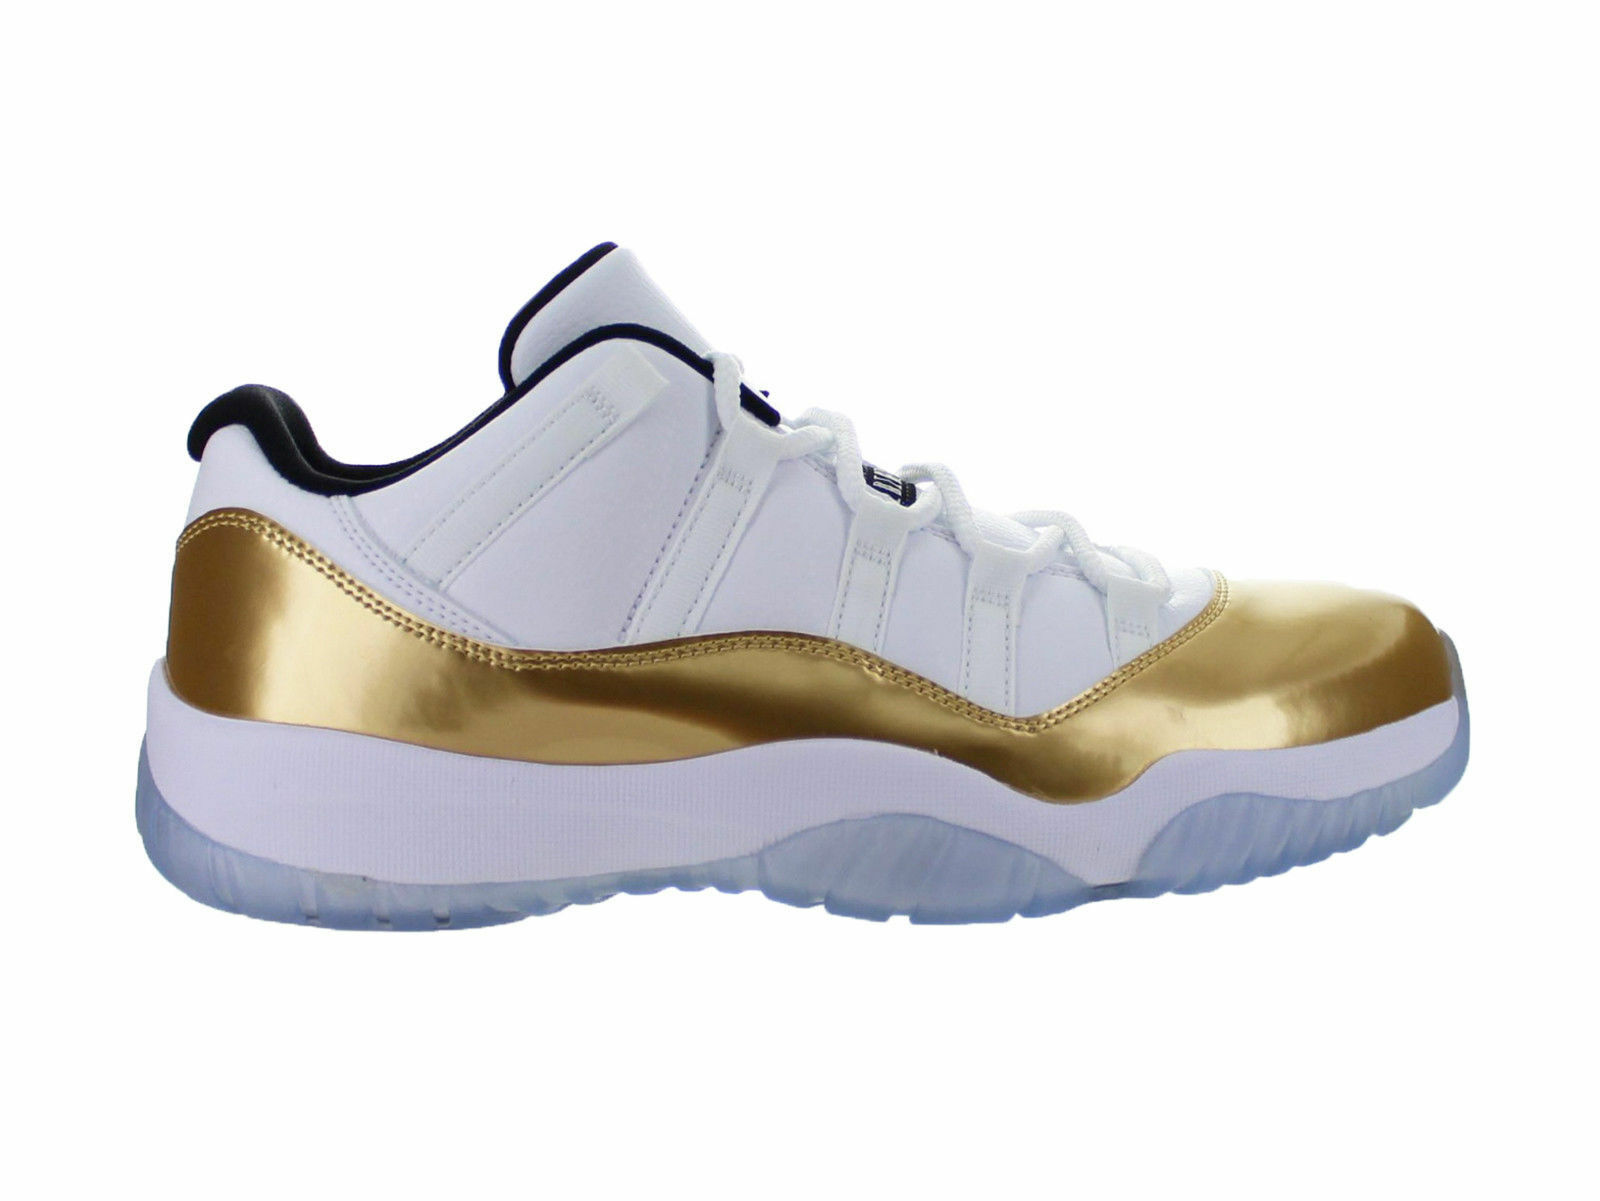 ON HAND NEW Nike Air Jordan Mens Retro 11 Low Gold Closing Ceremony 528895-103